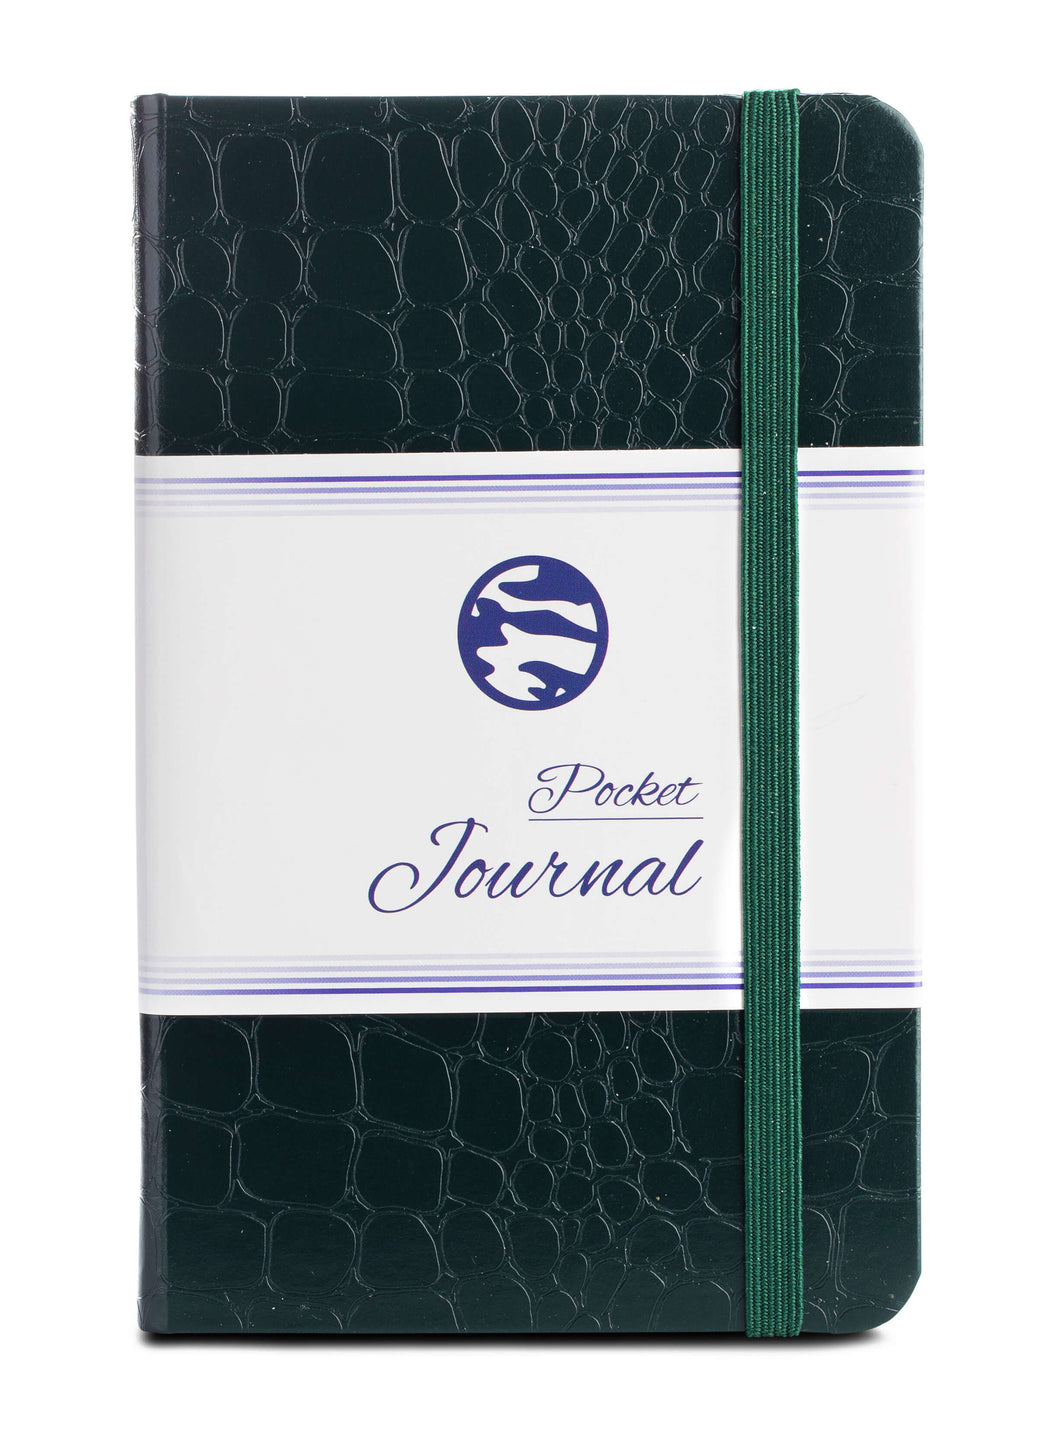 Pocket Journal - Crocodile Green